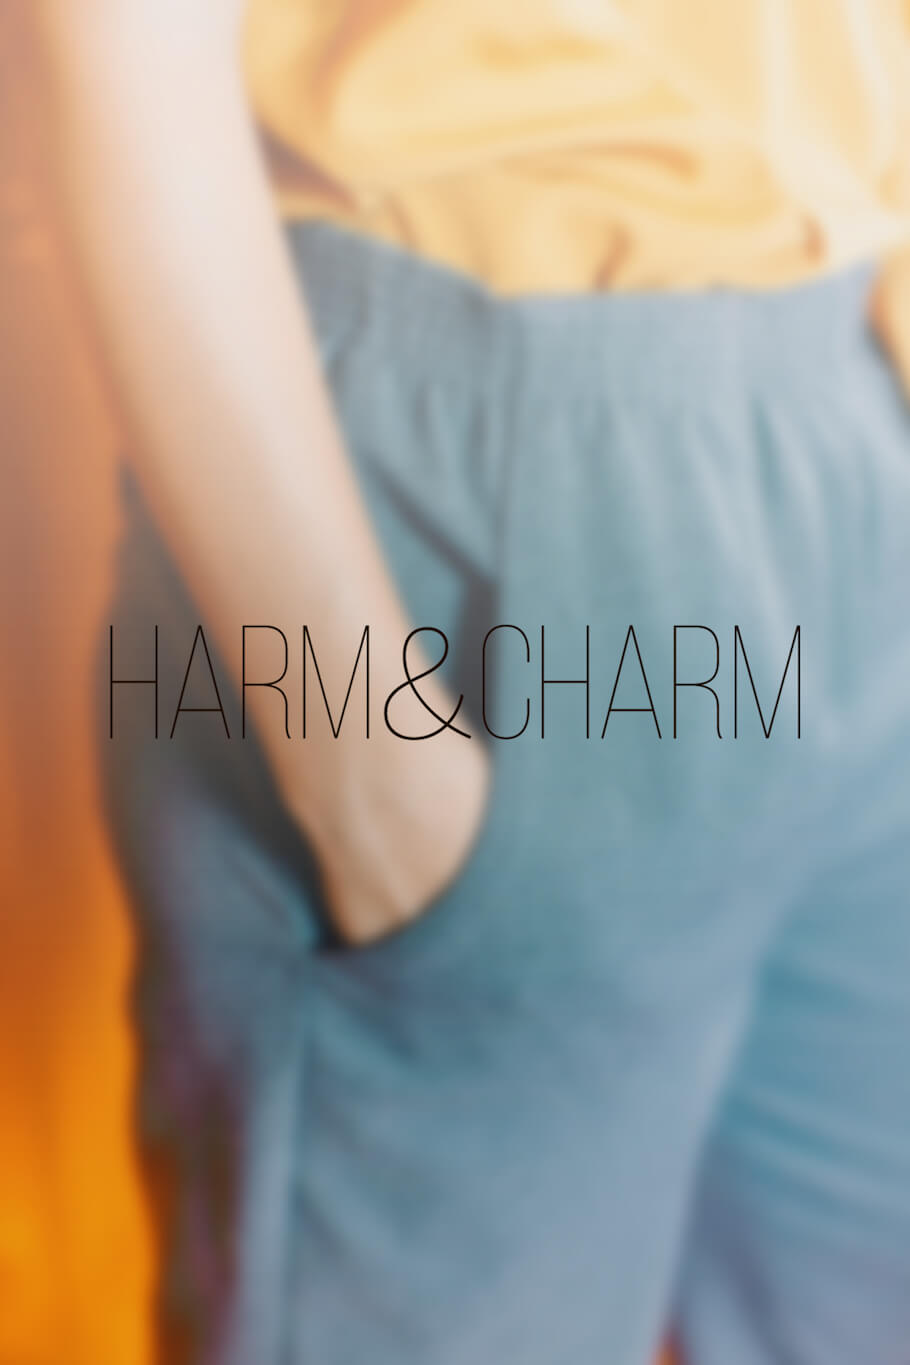 Harmandcharm-Designer Clothing Store